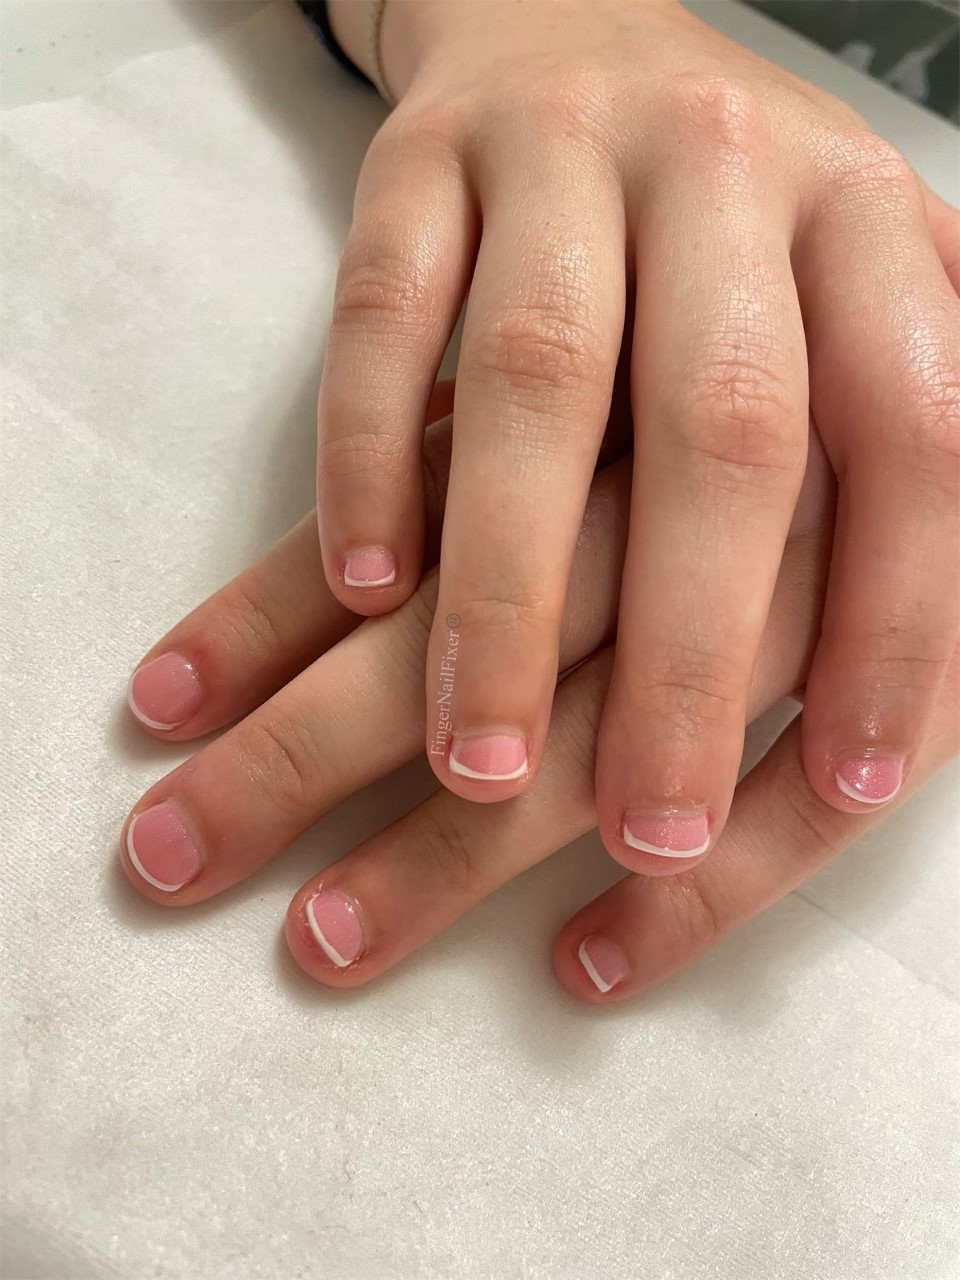 Bitten nails with French manicure.